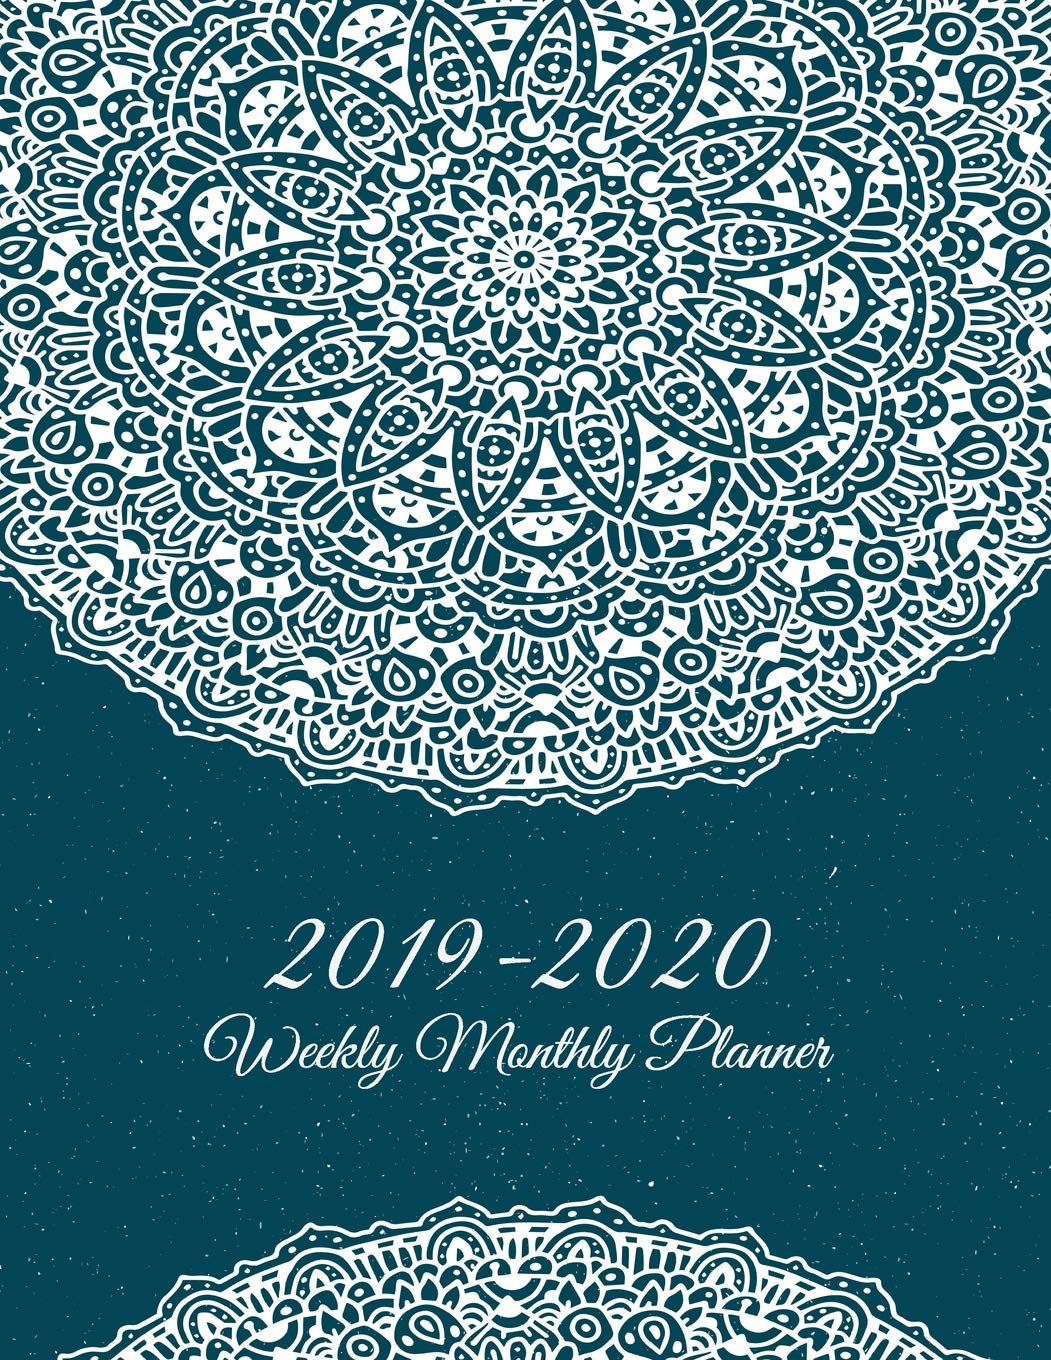 2019-2020 Weekly Monthly Planner: Blue Mandala Art Books ...